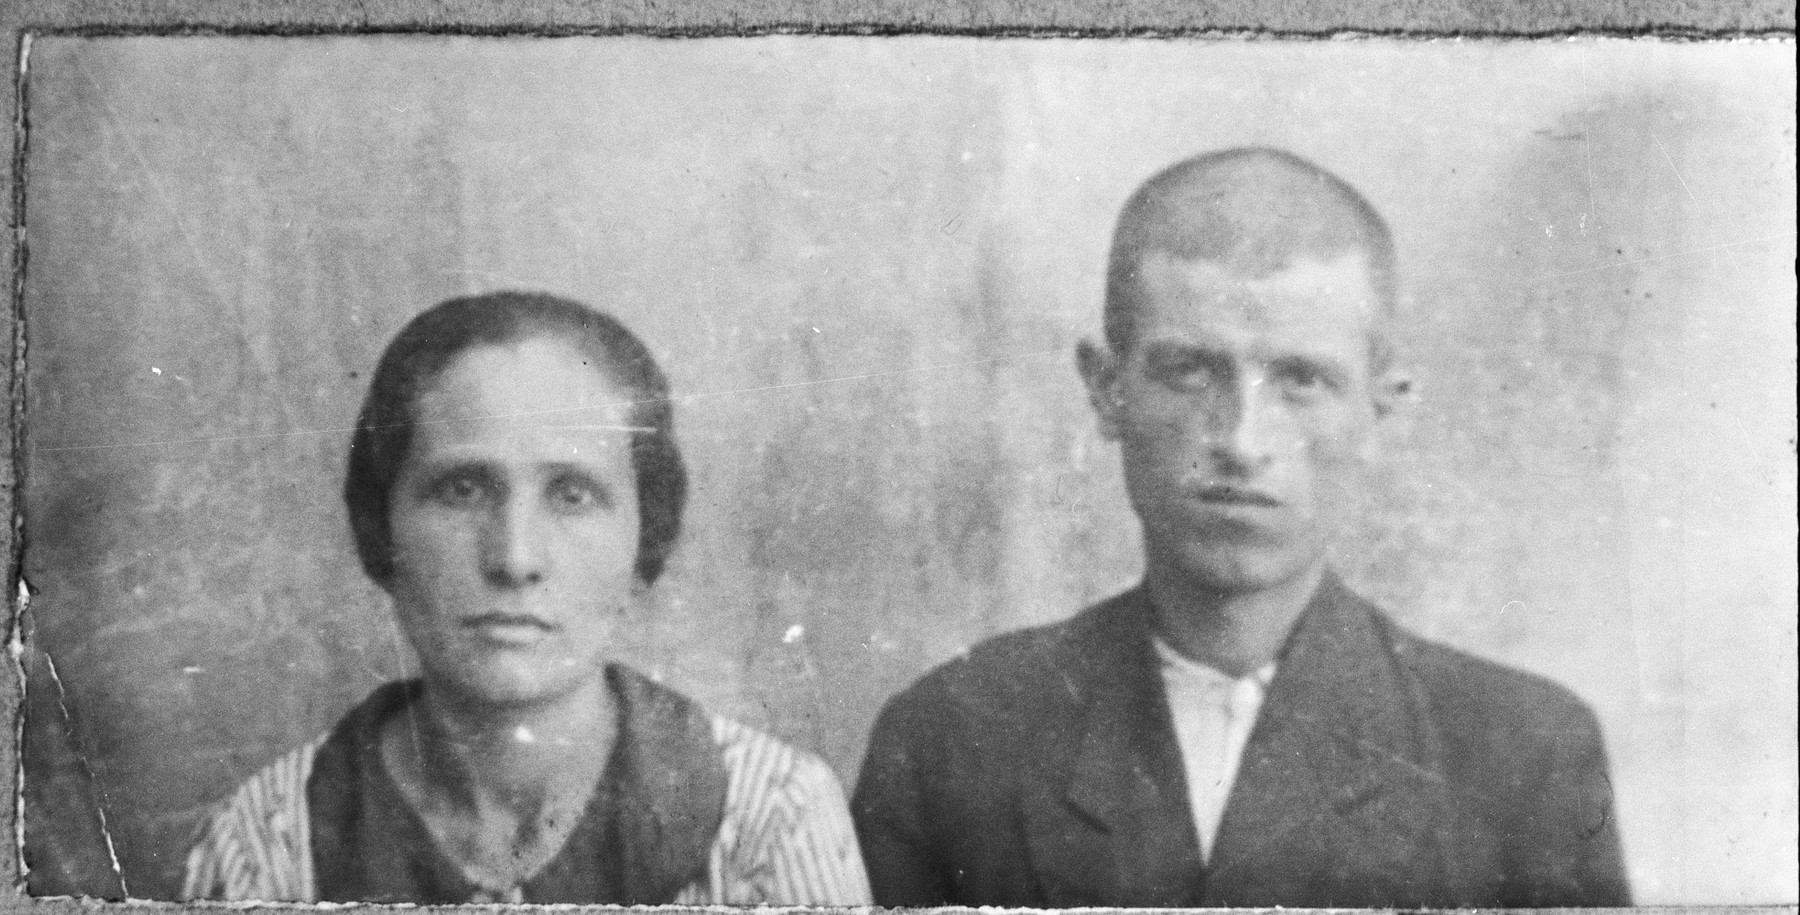 Portrait of David Koen, son of Yehuda Koen, and David's wife, Sara.  David was a laborer.  They lived at Zmayeva 13 in Bitola.